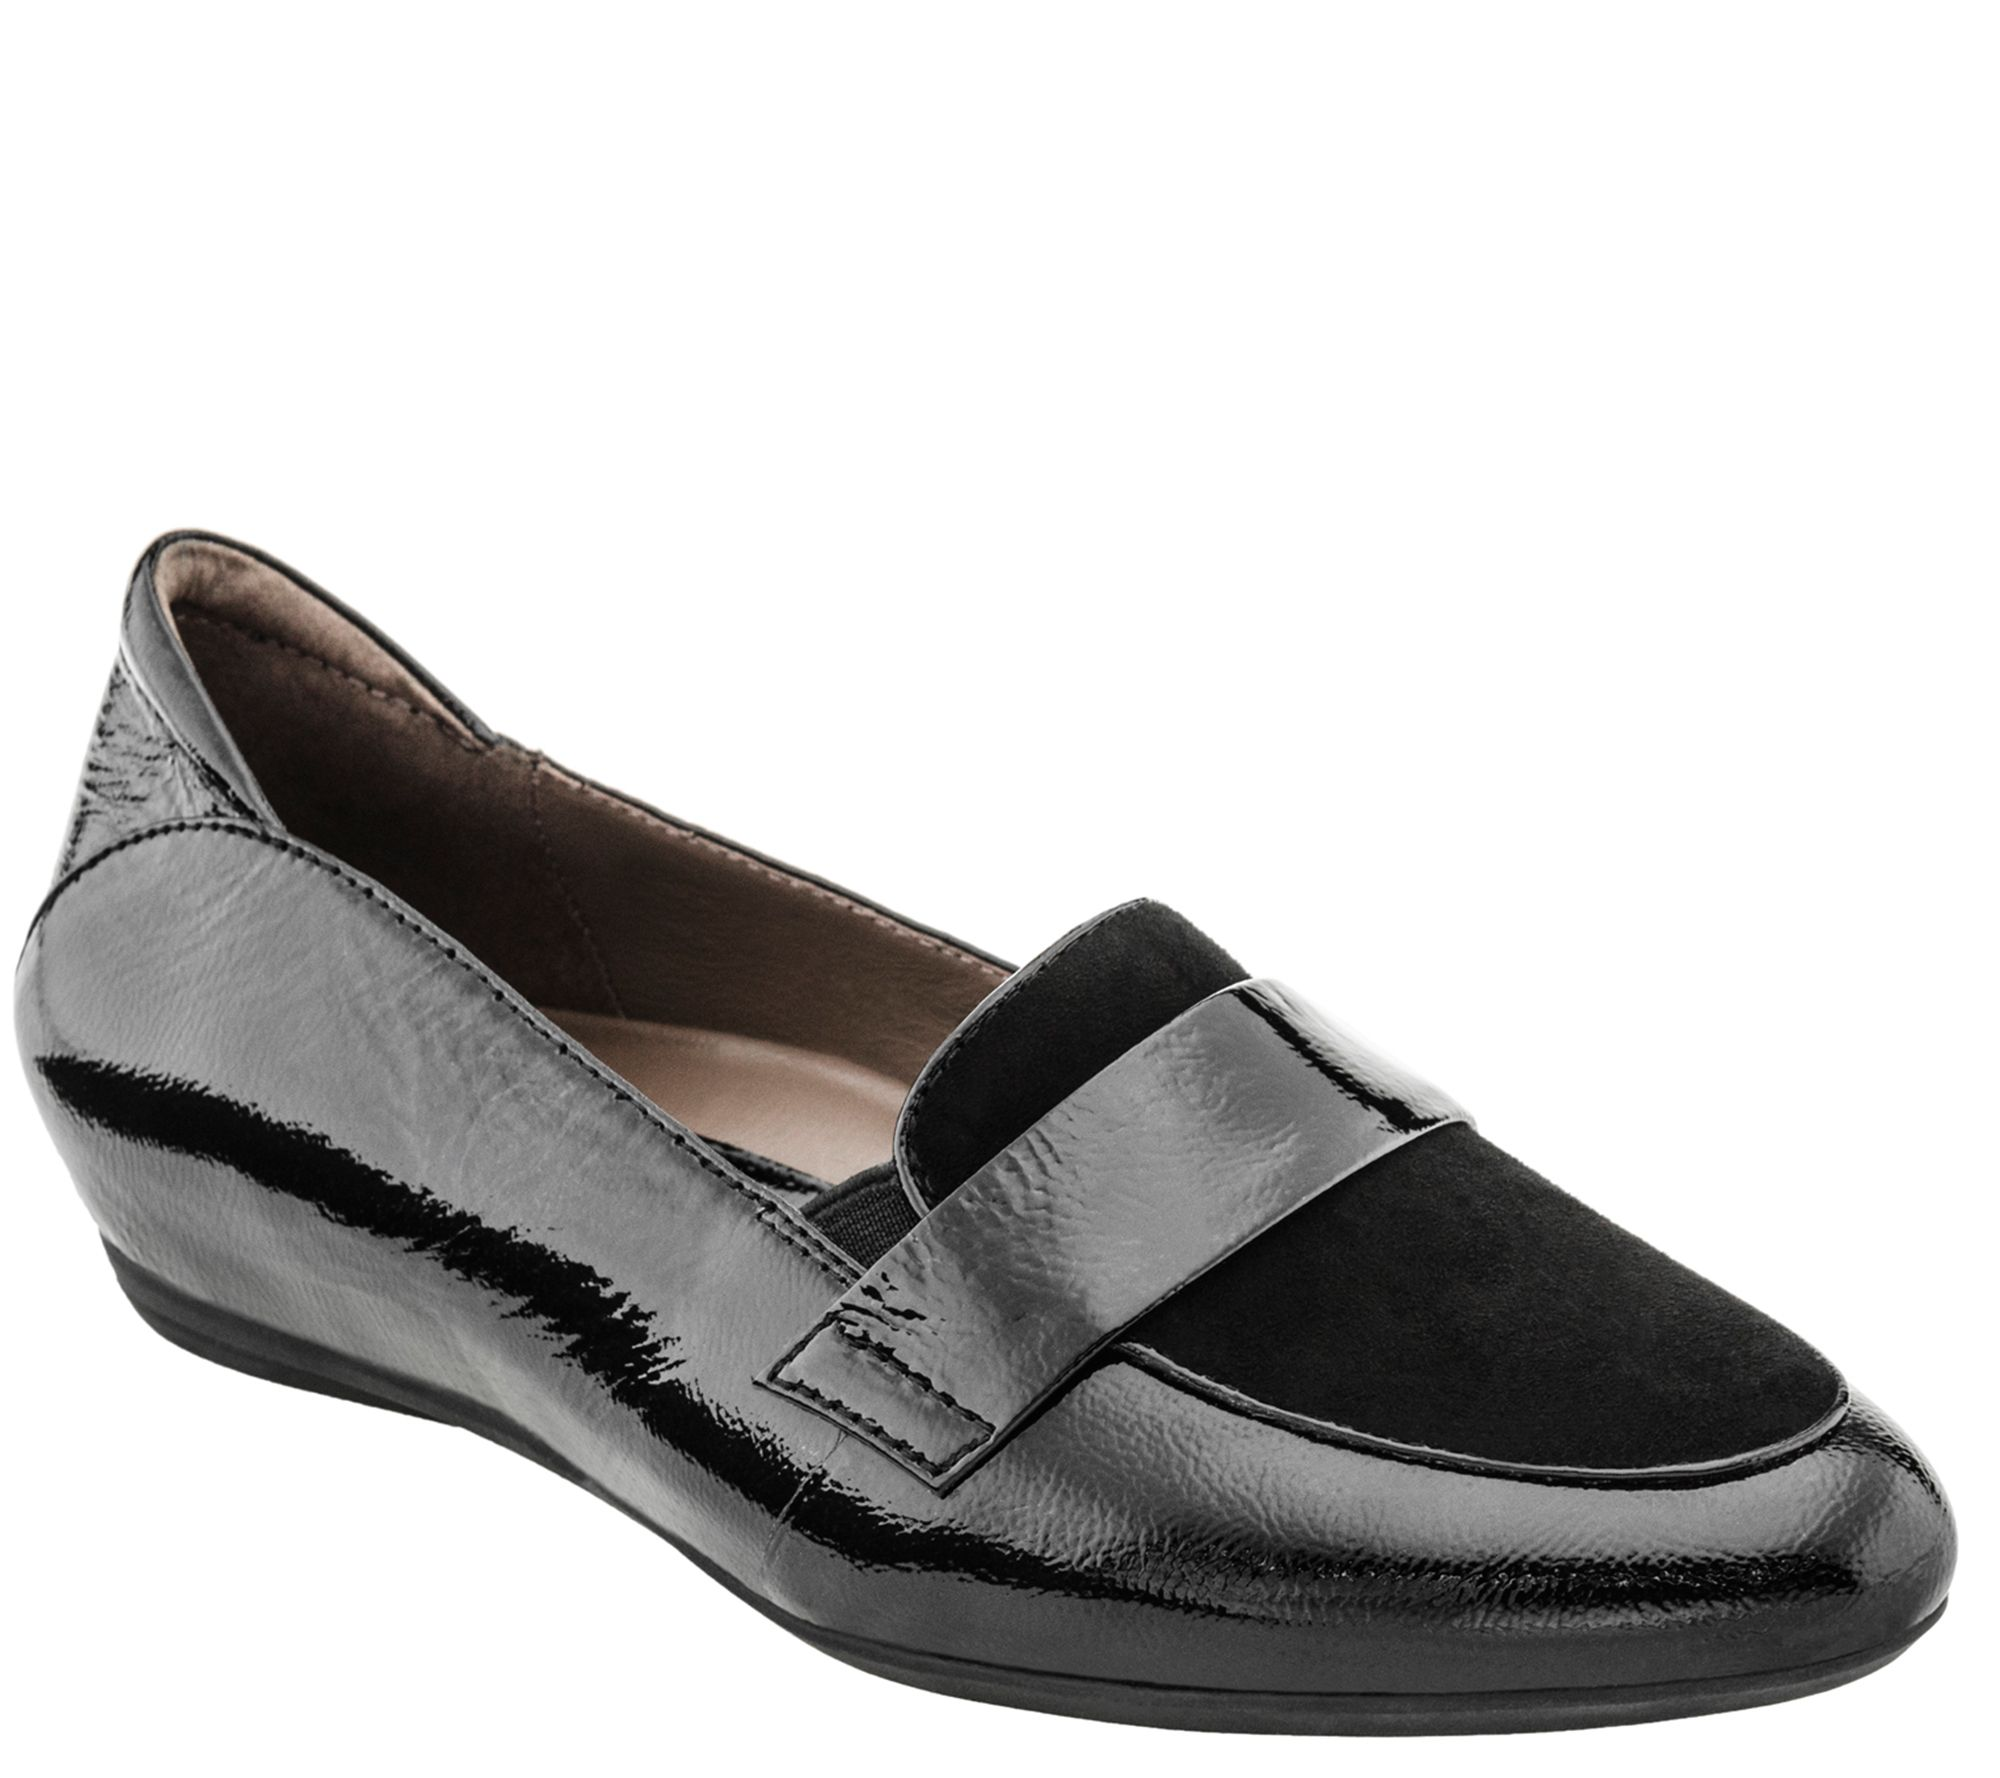 earthies leather slip on loafers bremen qvc